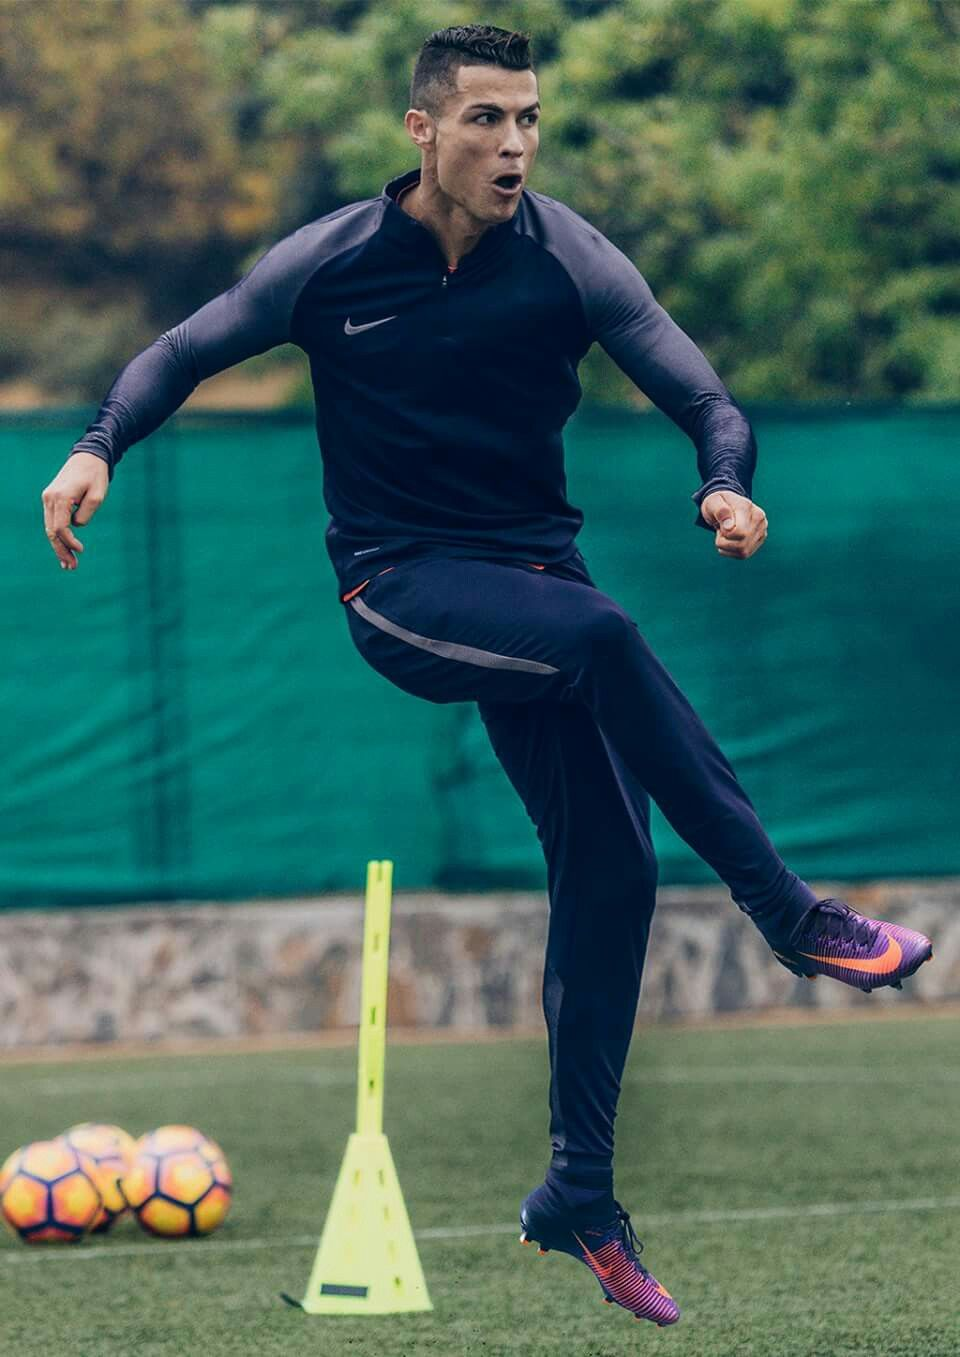 Cristiano Ronaldo Training, Workout Routine, And Diet Plan